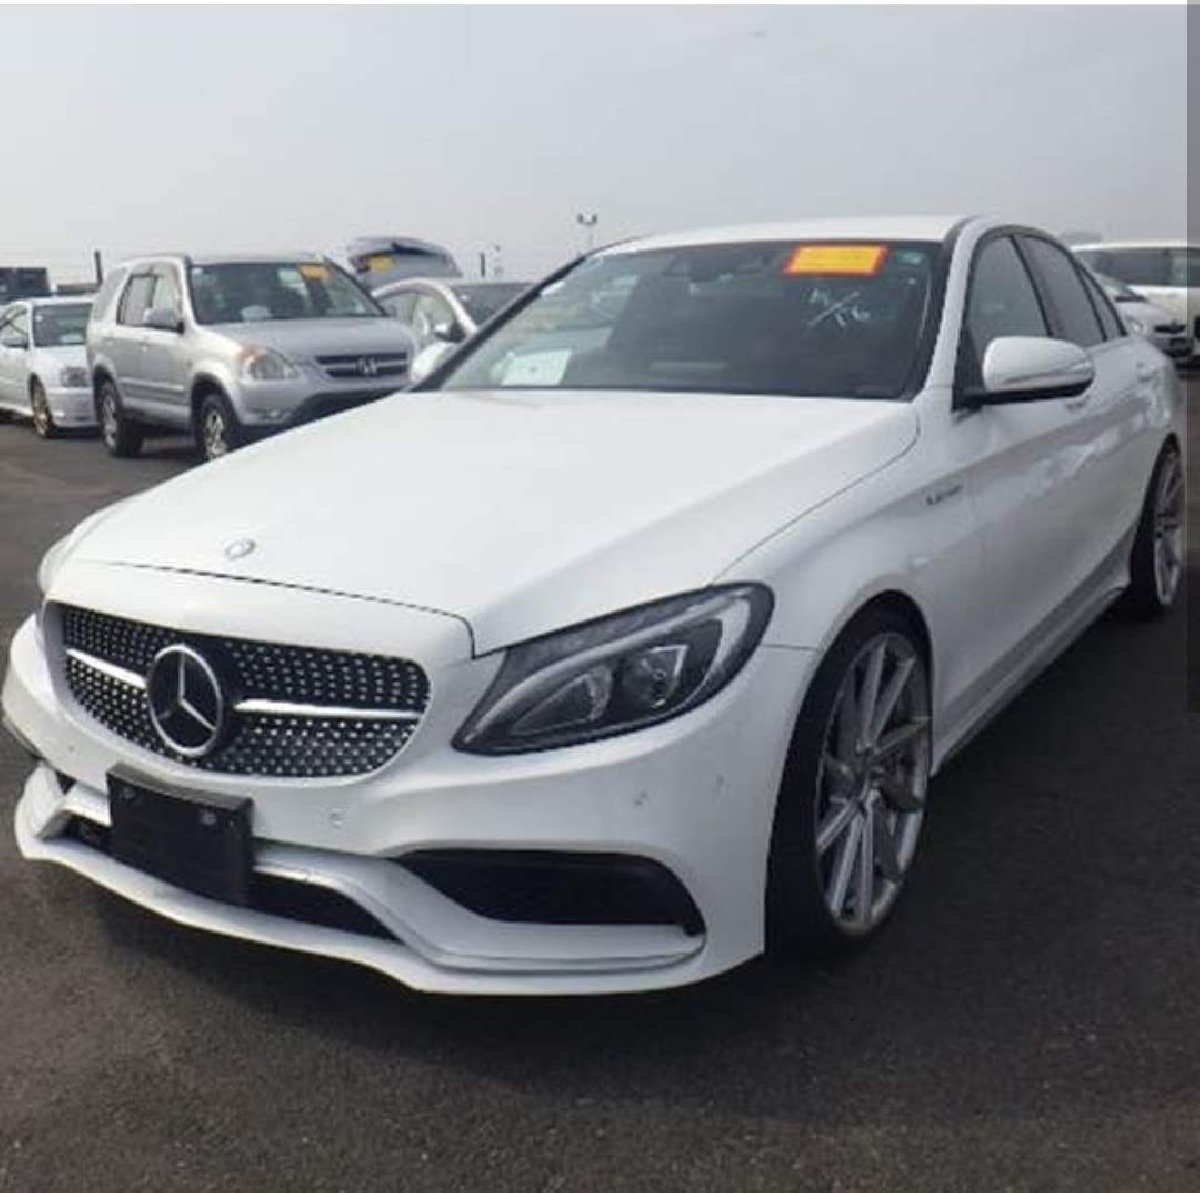 2015 mercedes c63 amg for sale in downtown kingston kingston st andrew cars. Black Bedroom Furniture Sets. Home Design Ideas